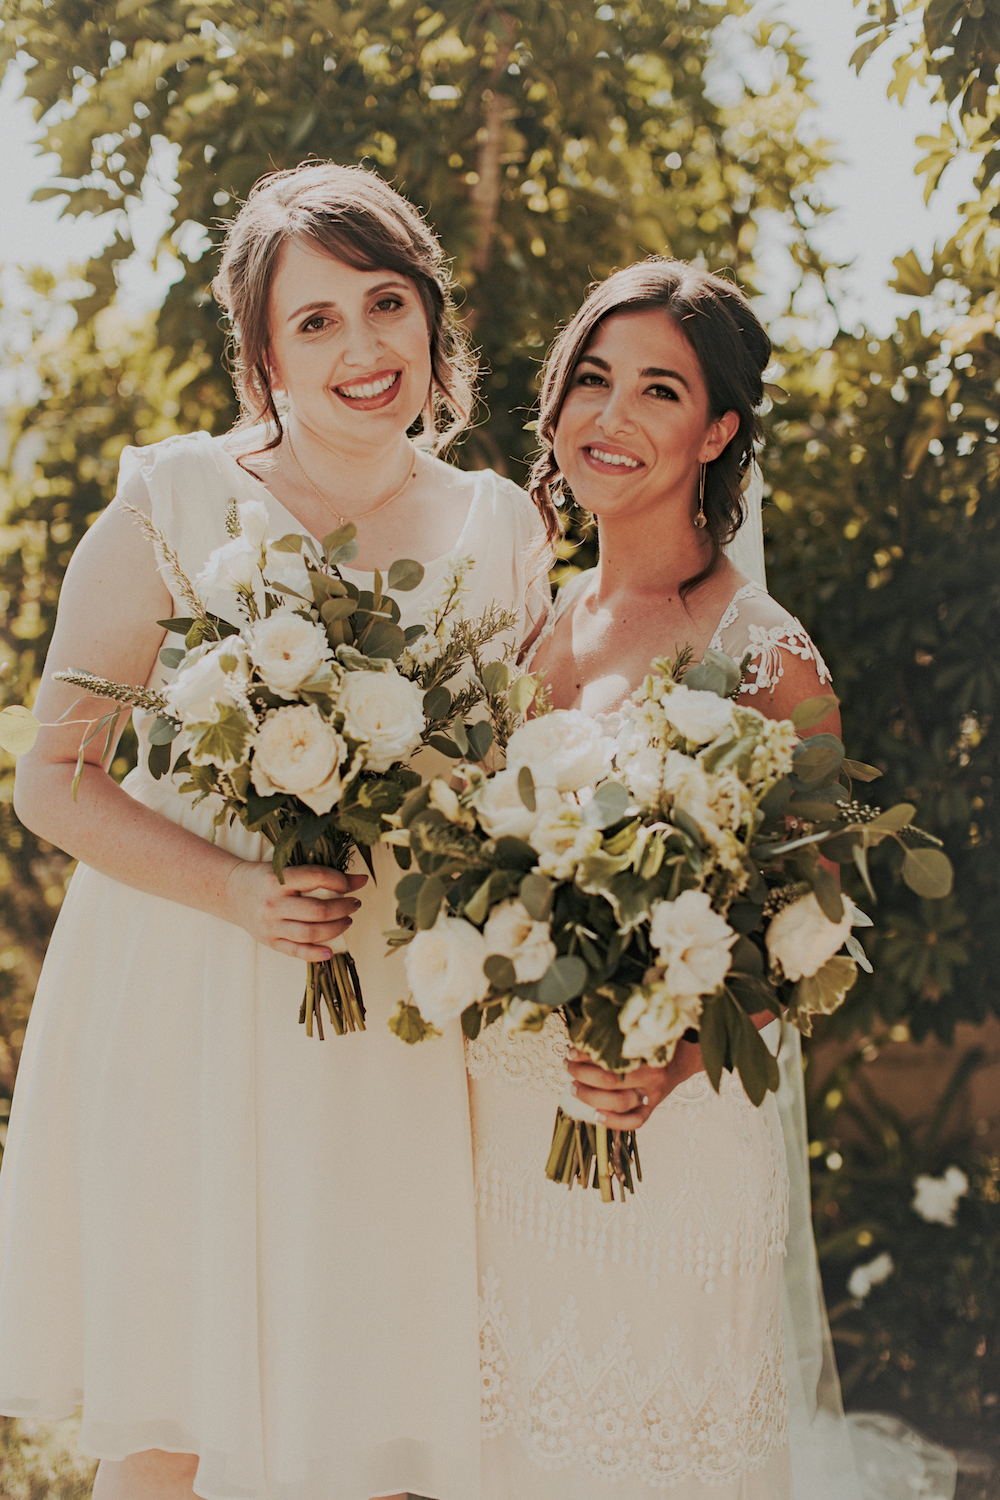 Green and white wedding bouquets  by San Diego wedding florist, Compass Floral.